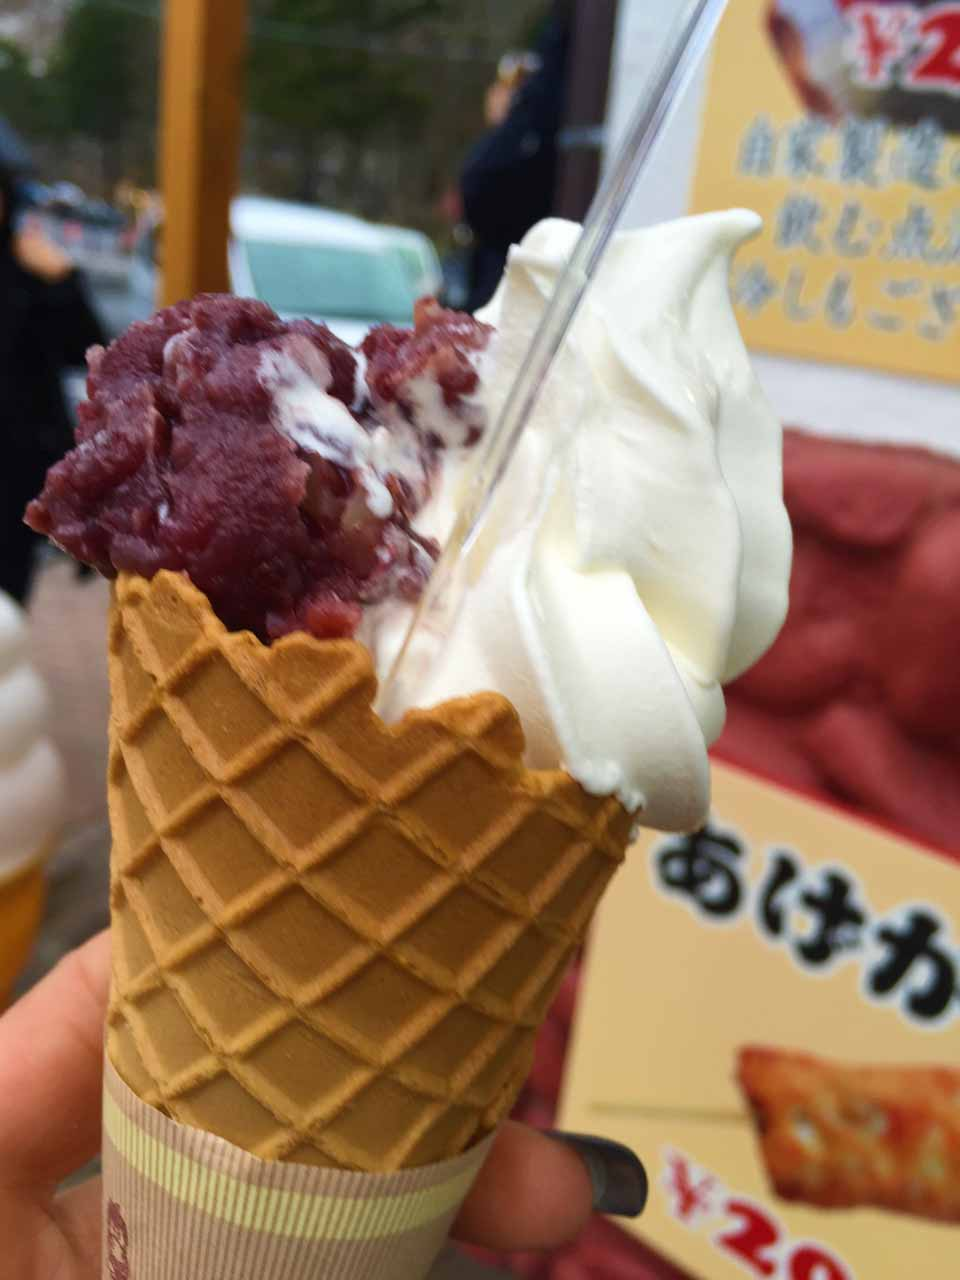 curly nomad asia japan nara ice cream black beans foodie's heaven photo